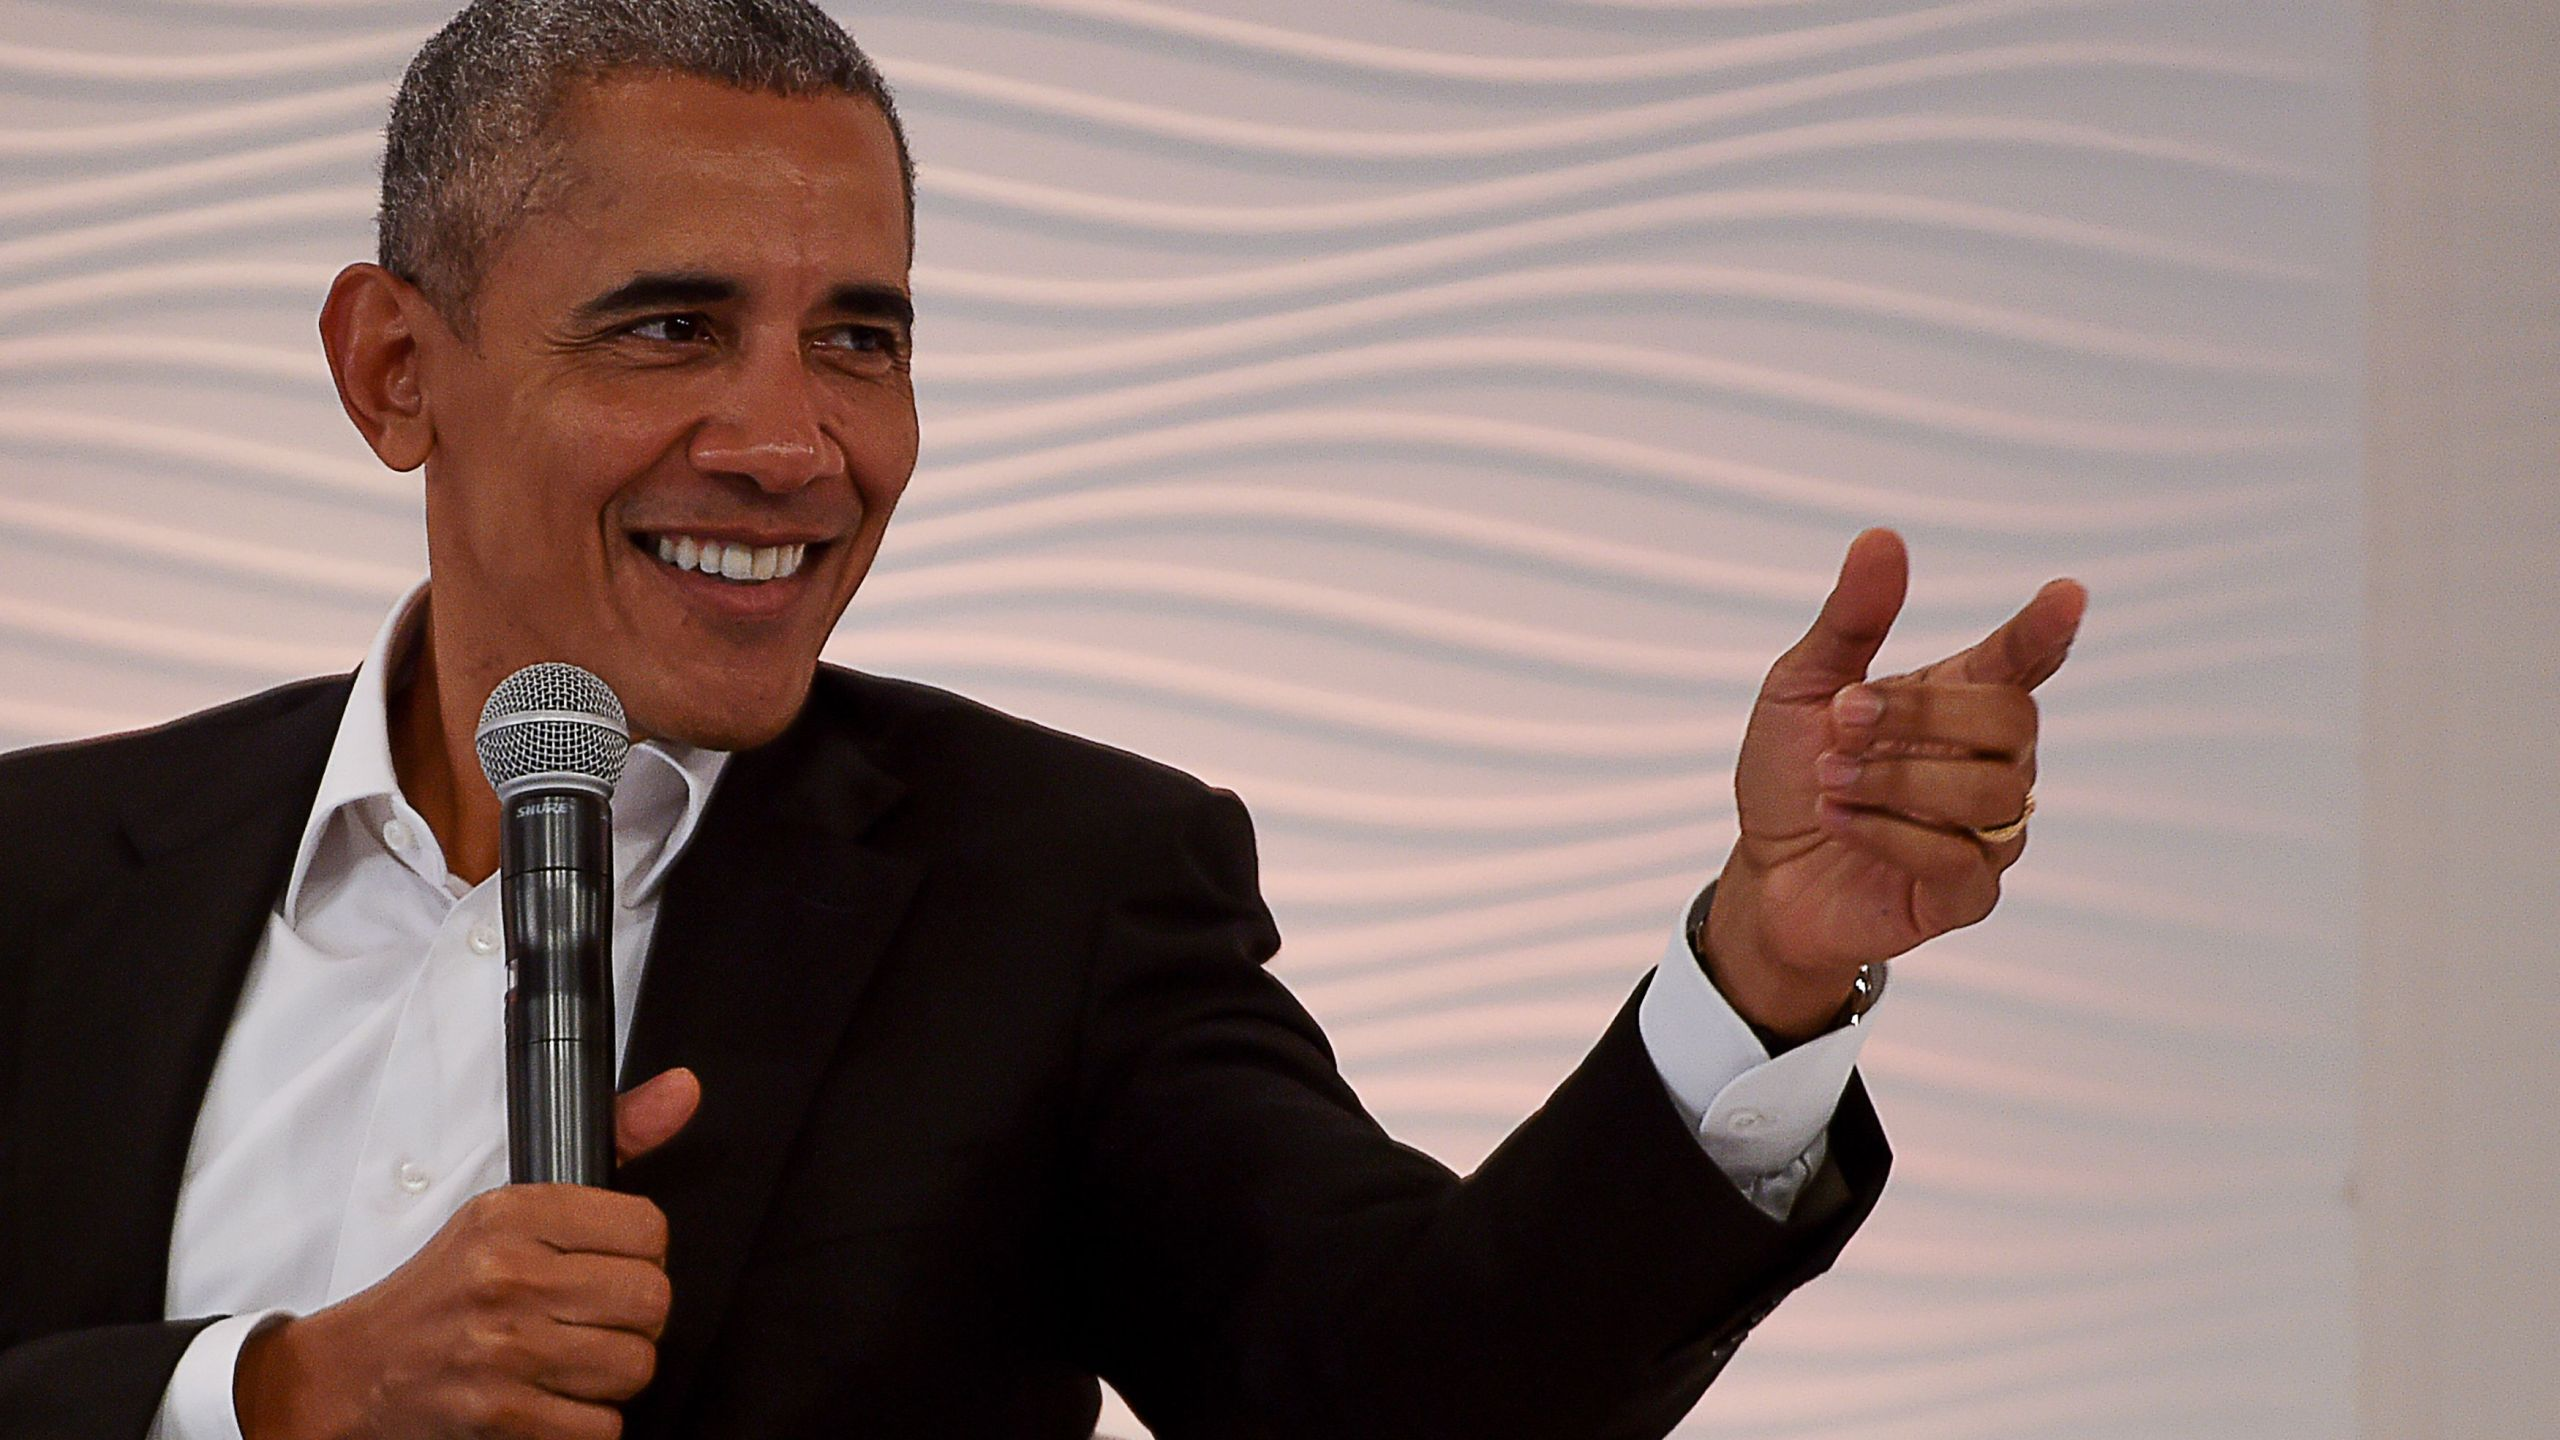 Former President Barack Obama speaks during his address at the Hindustan Times Leadership Summit in the Indian capital New Delhi on Dec. 1, 2017. (Credit: MONEY SHARMA/AFP/Getty Images)